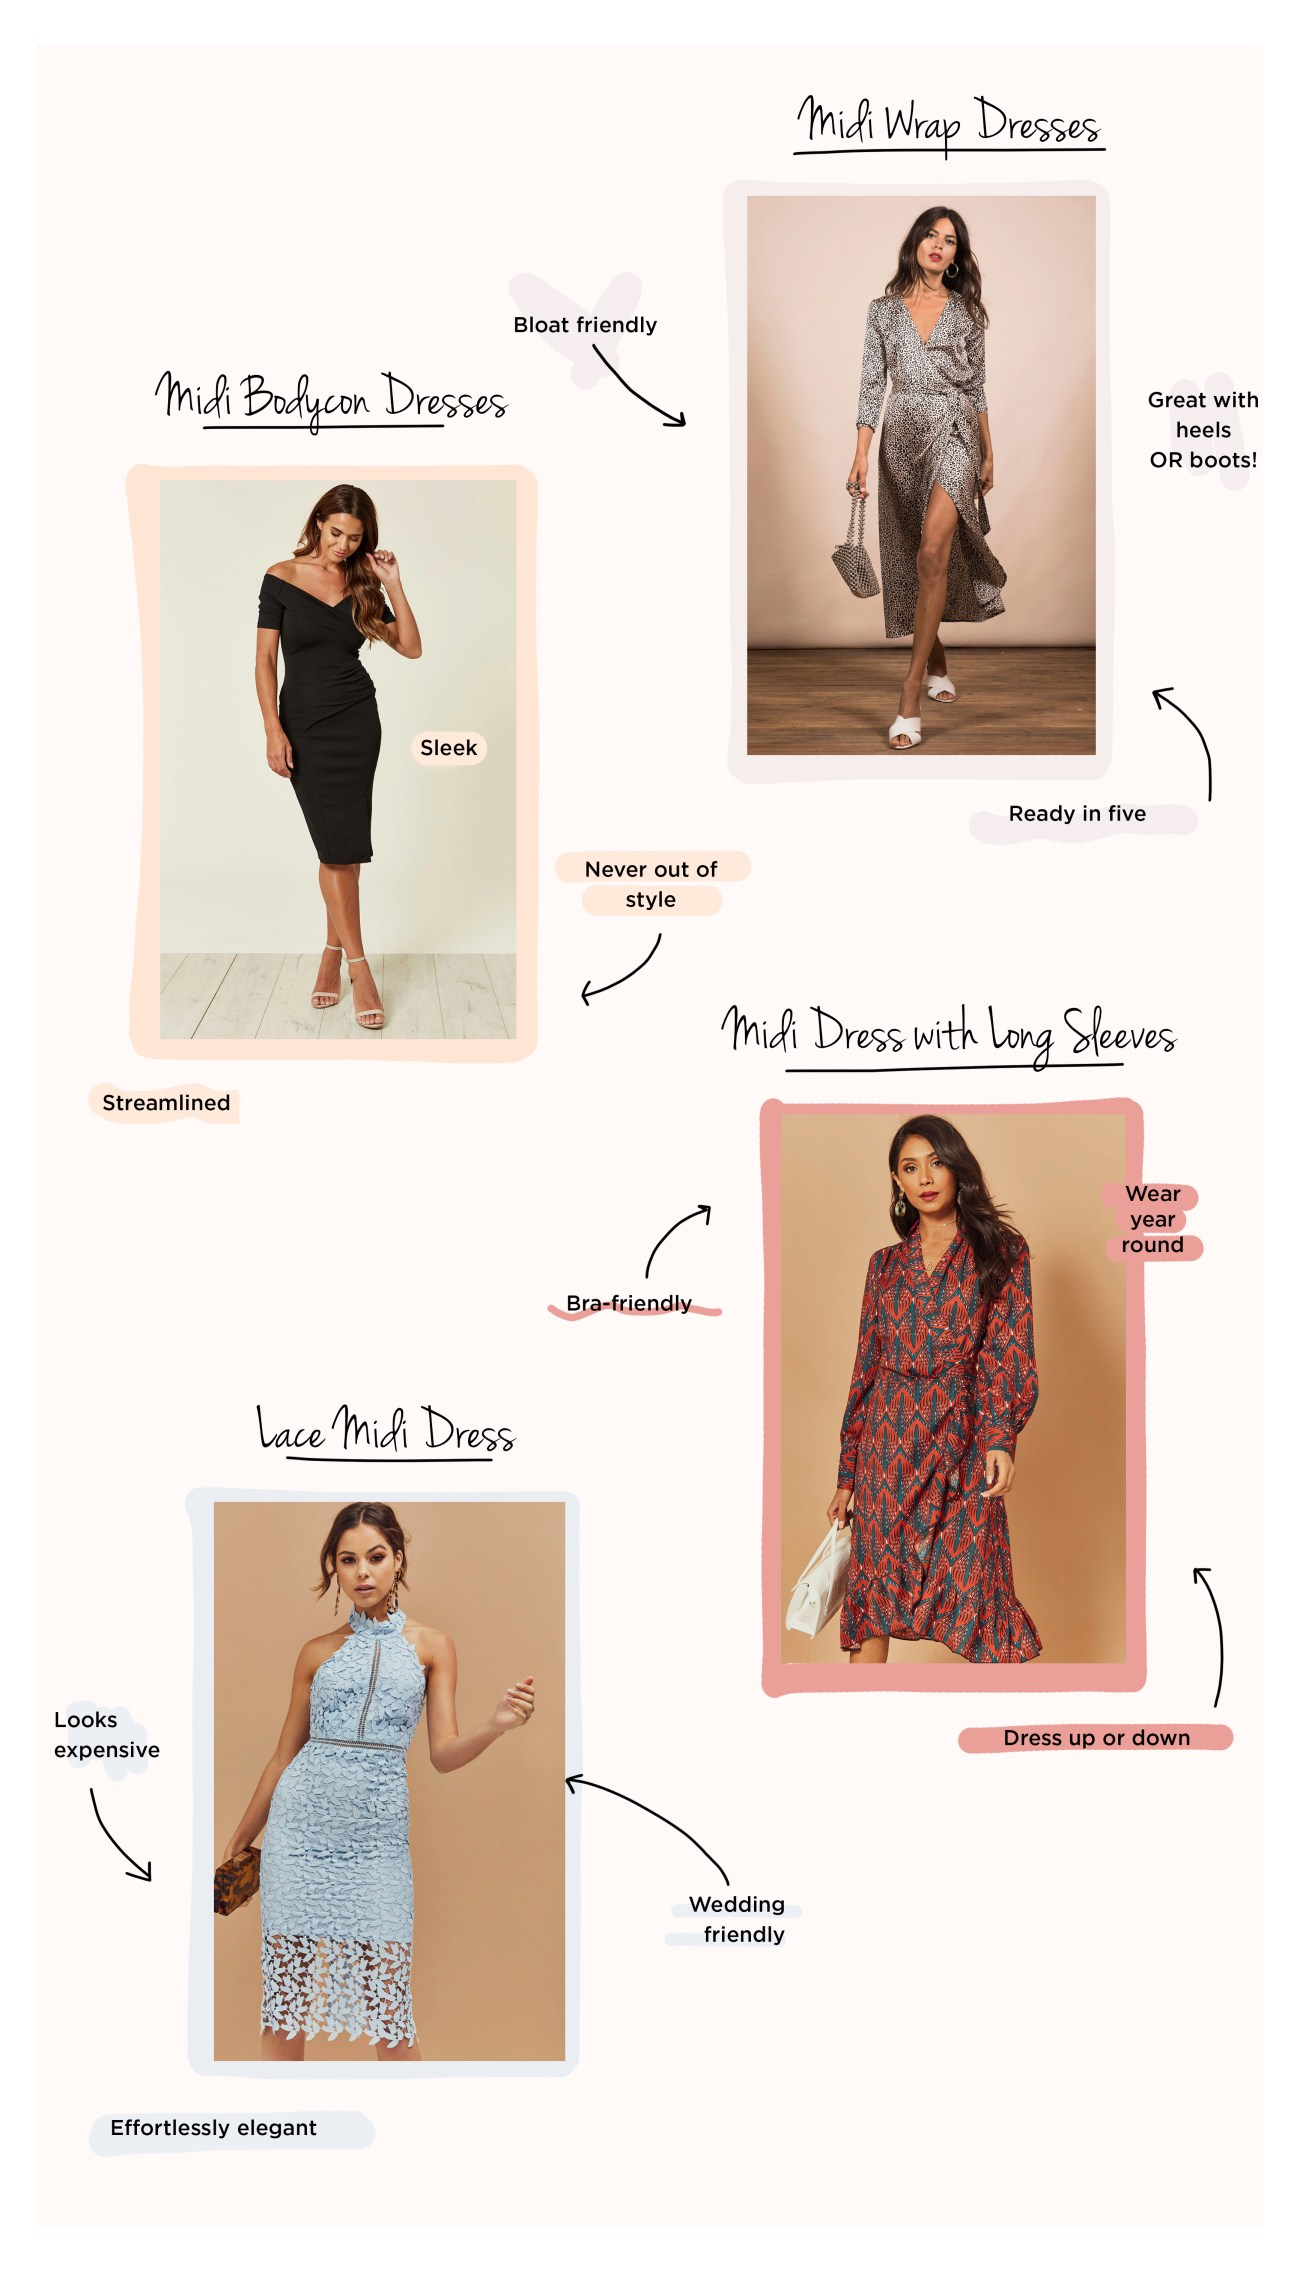 Types of midi dress